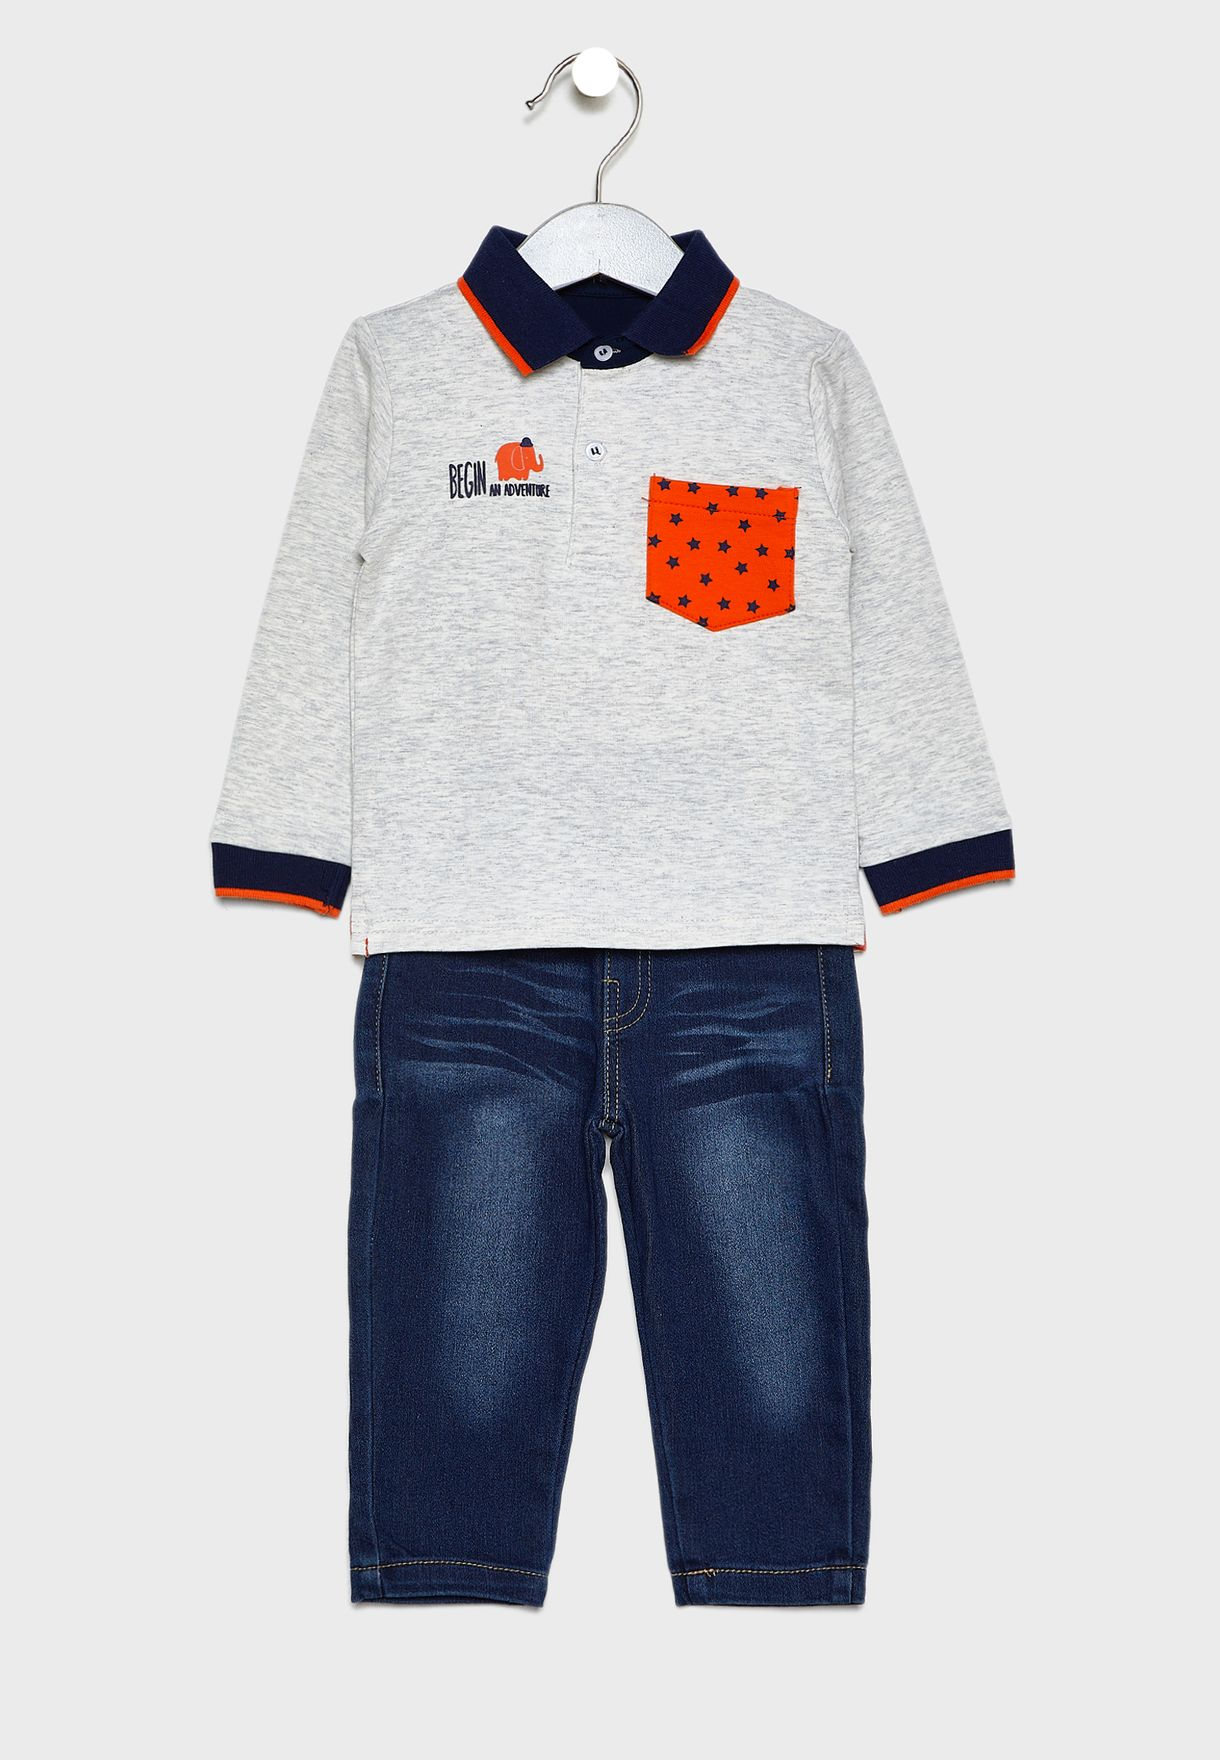 Kids T-Shirt + Jogg Jeans Set